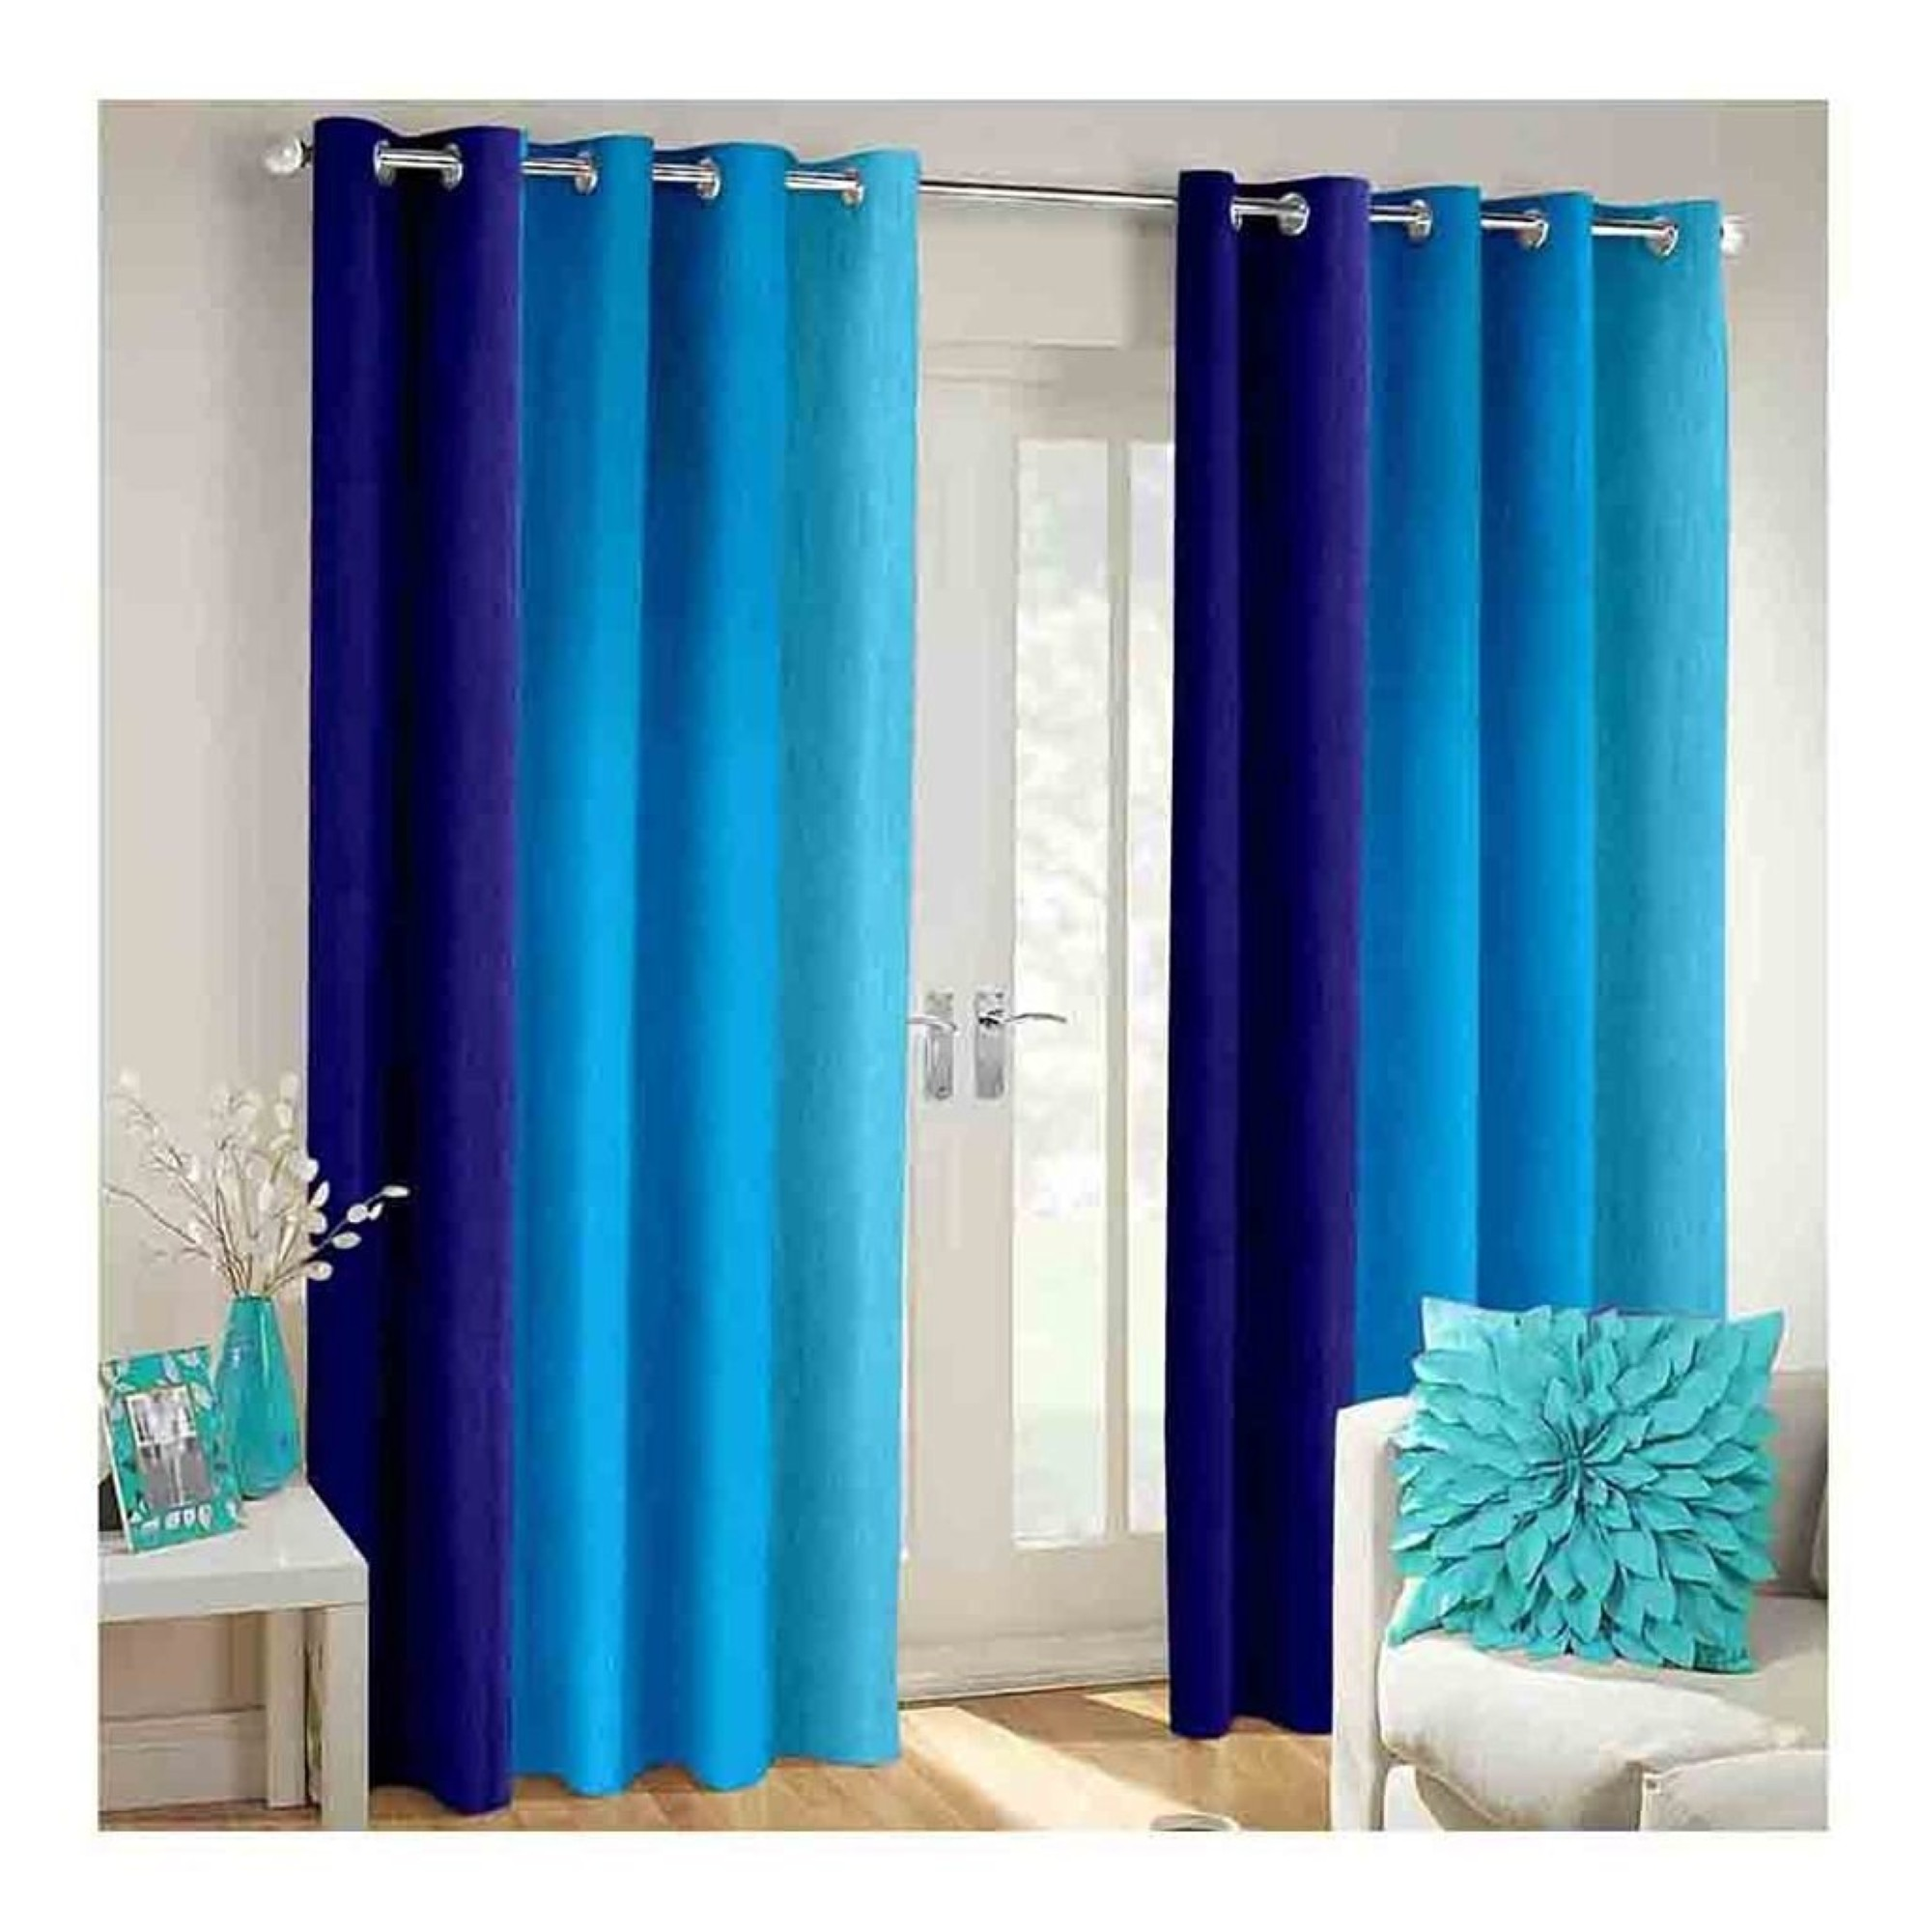 Avioni Beautiful Long Crush Stripes Blue Shades Window And Door Curtains Heavy Material Set Of 2